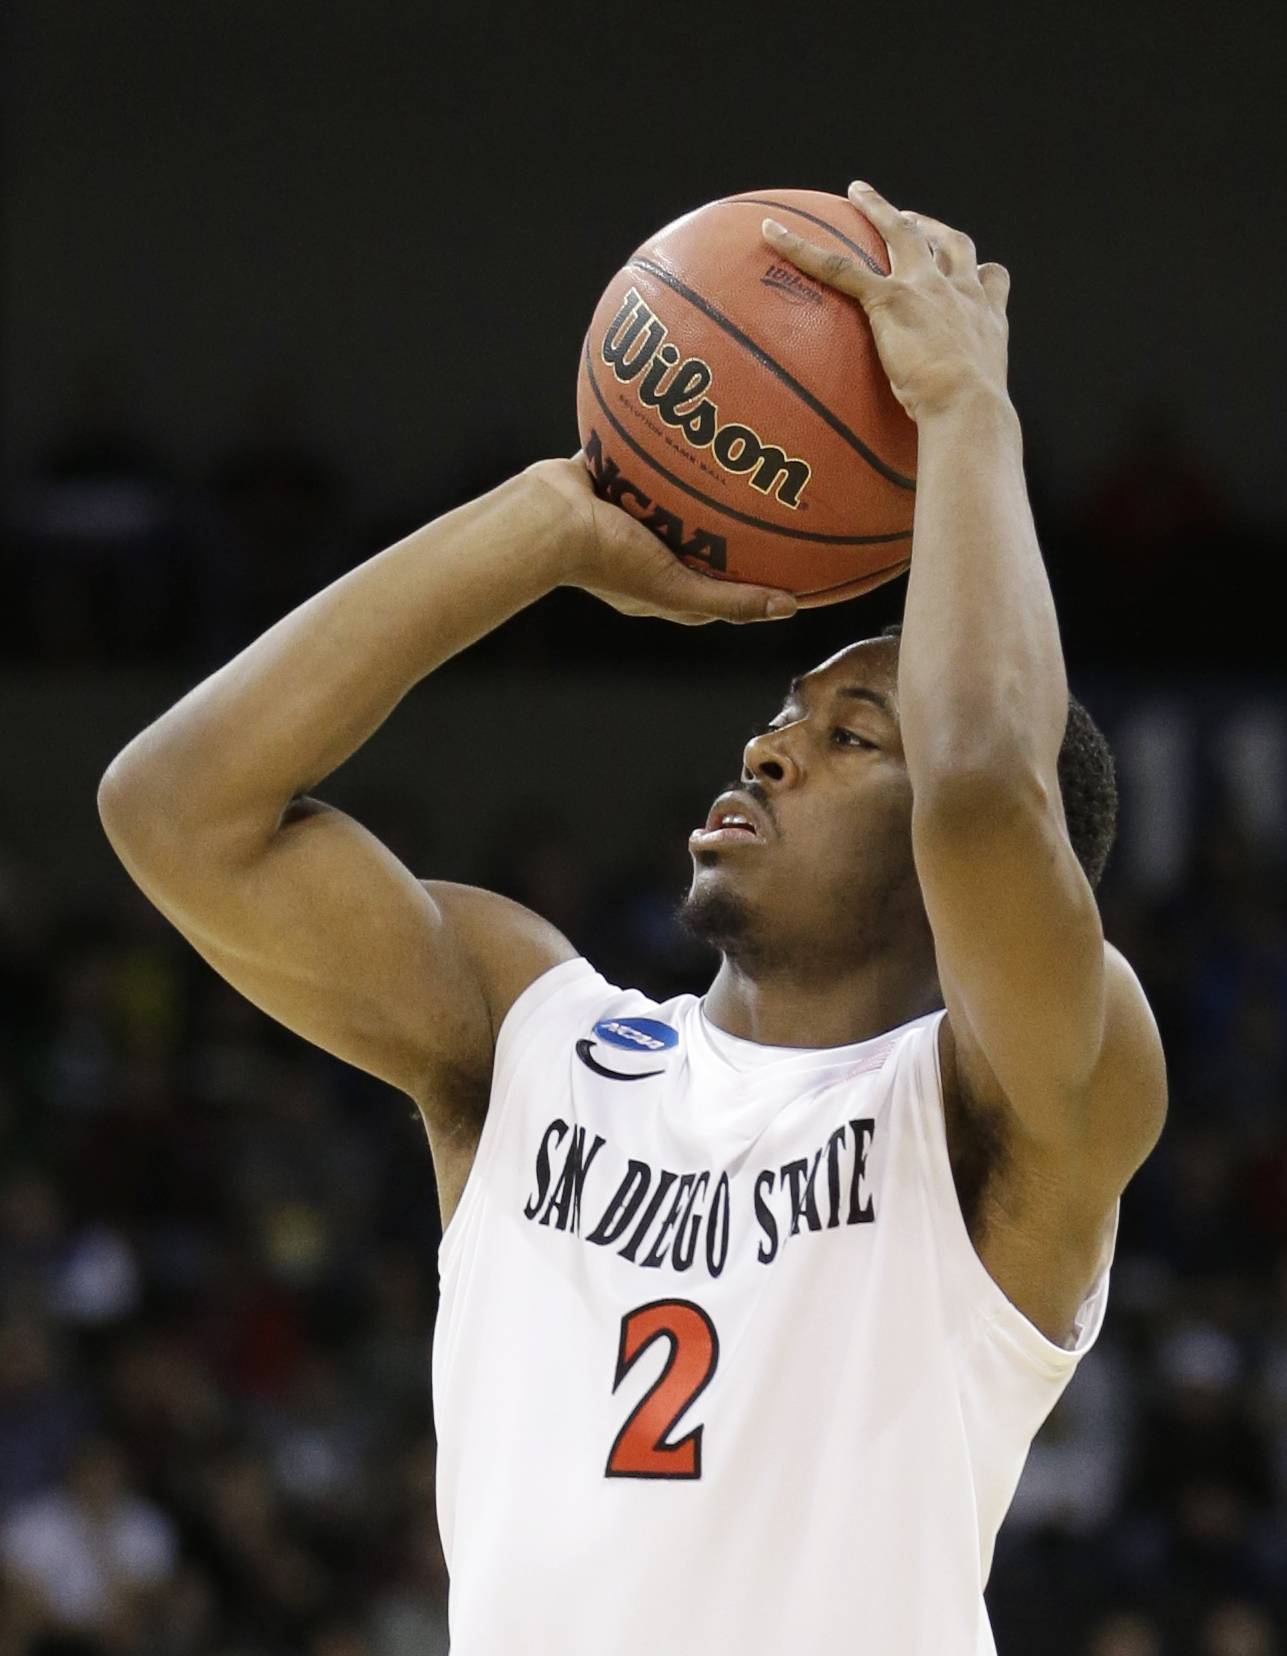 San Diego State's Xavier Thames shoots against North Dakota State in the third round of the NCAA men's college basketball tournament in Spokane, Wash., Saturday.